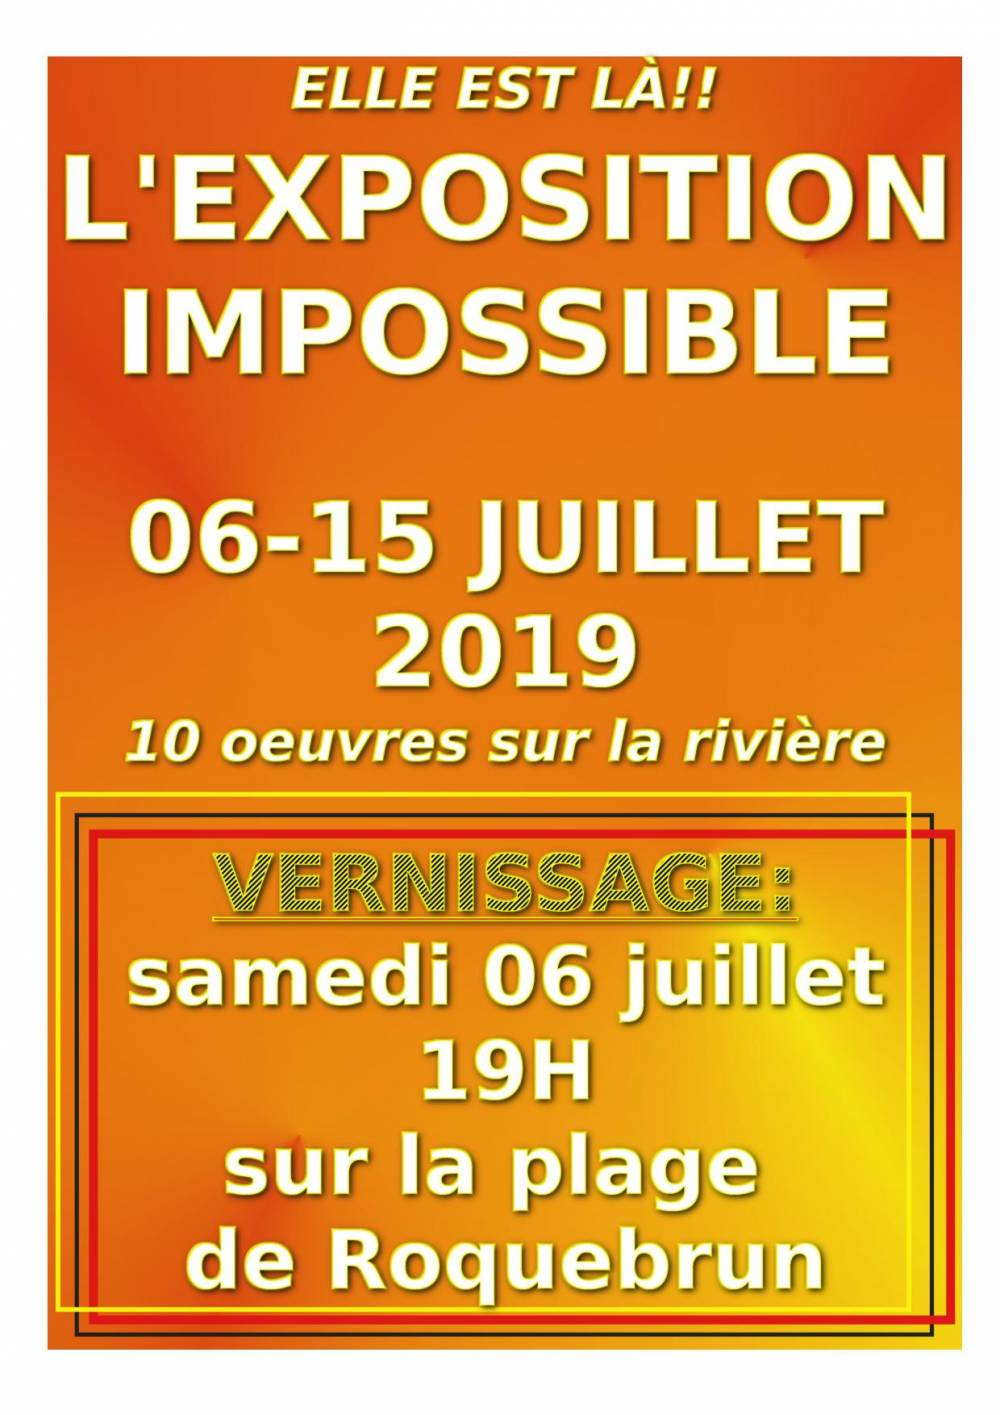 EXPO IMPOSSIBLE VERNISSAGE page 001